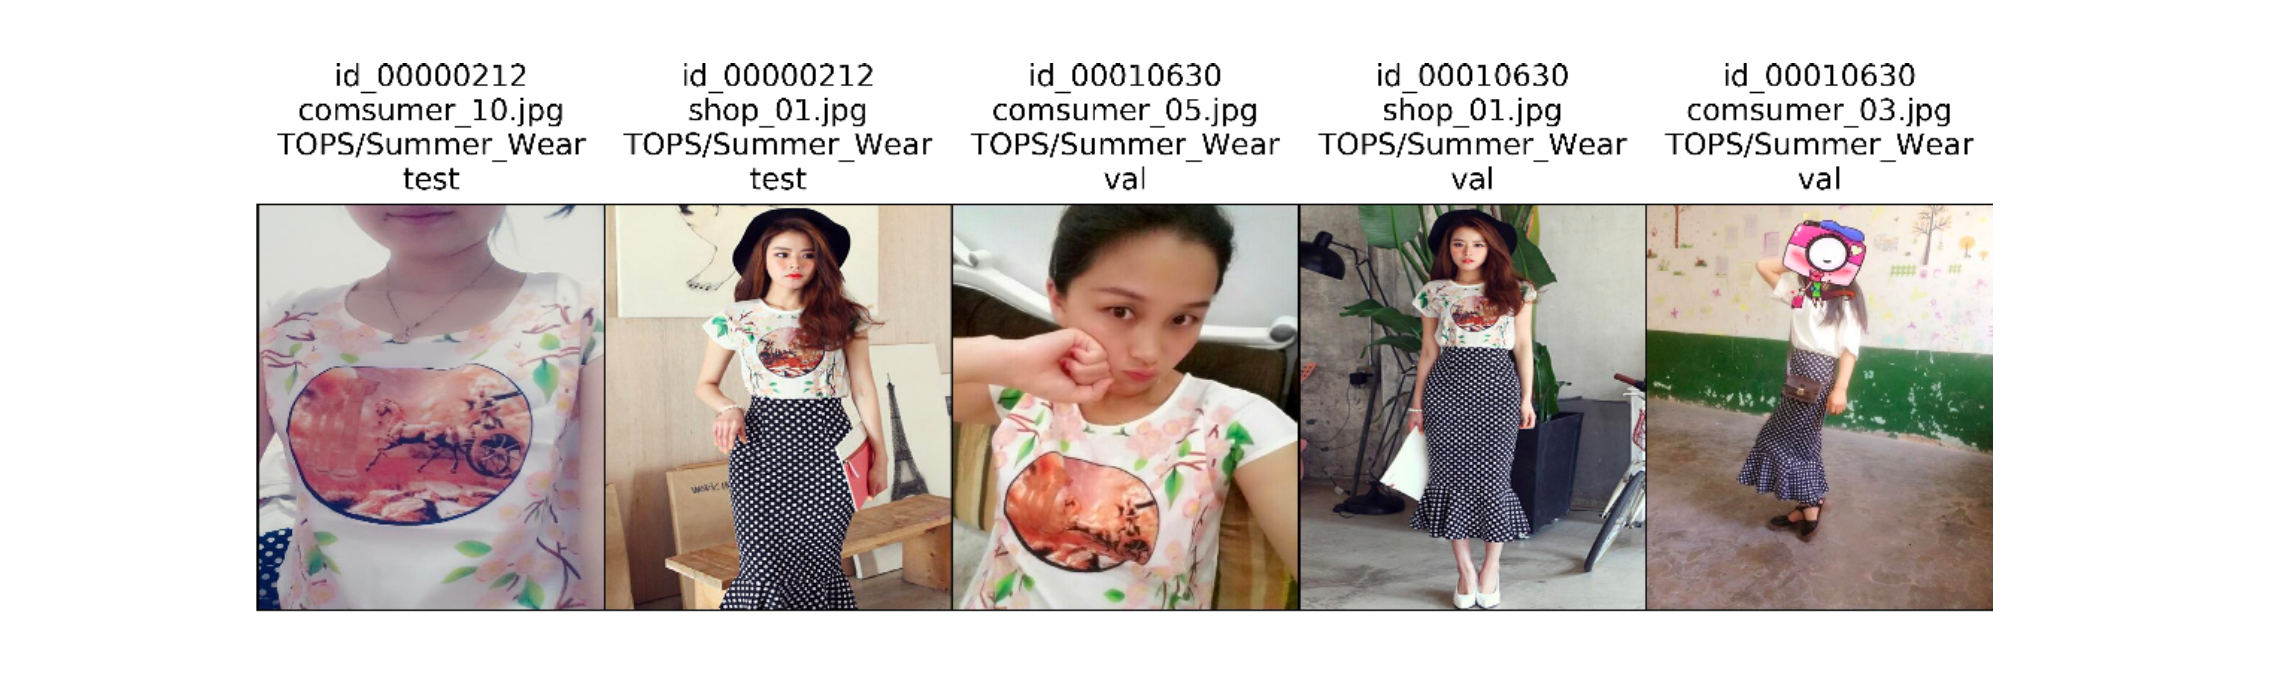 ollection of photos that depict, we believe, the same clothing item - top visible in the left most photo